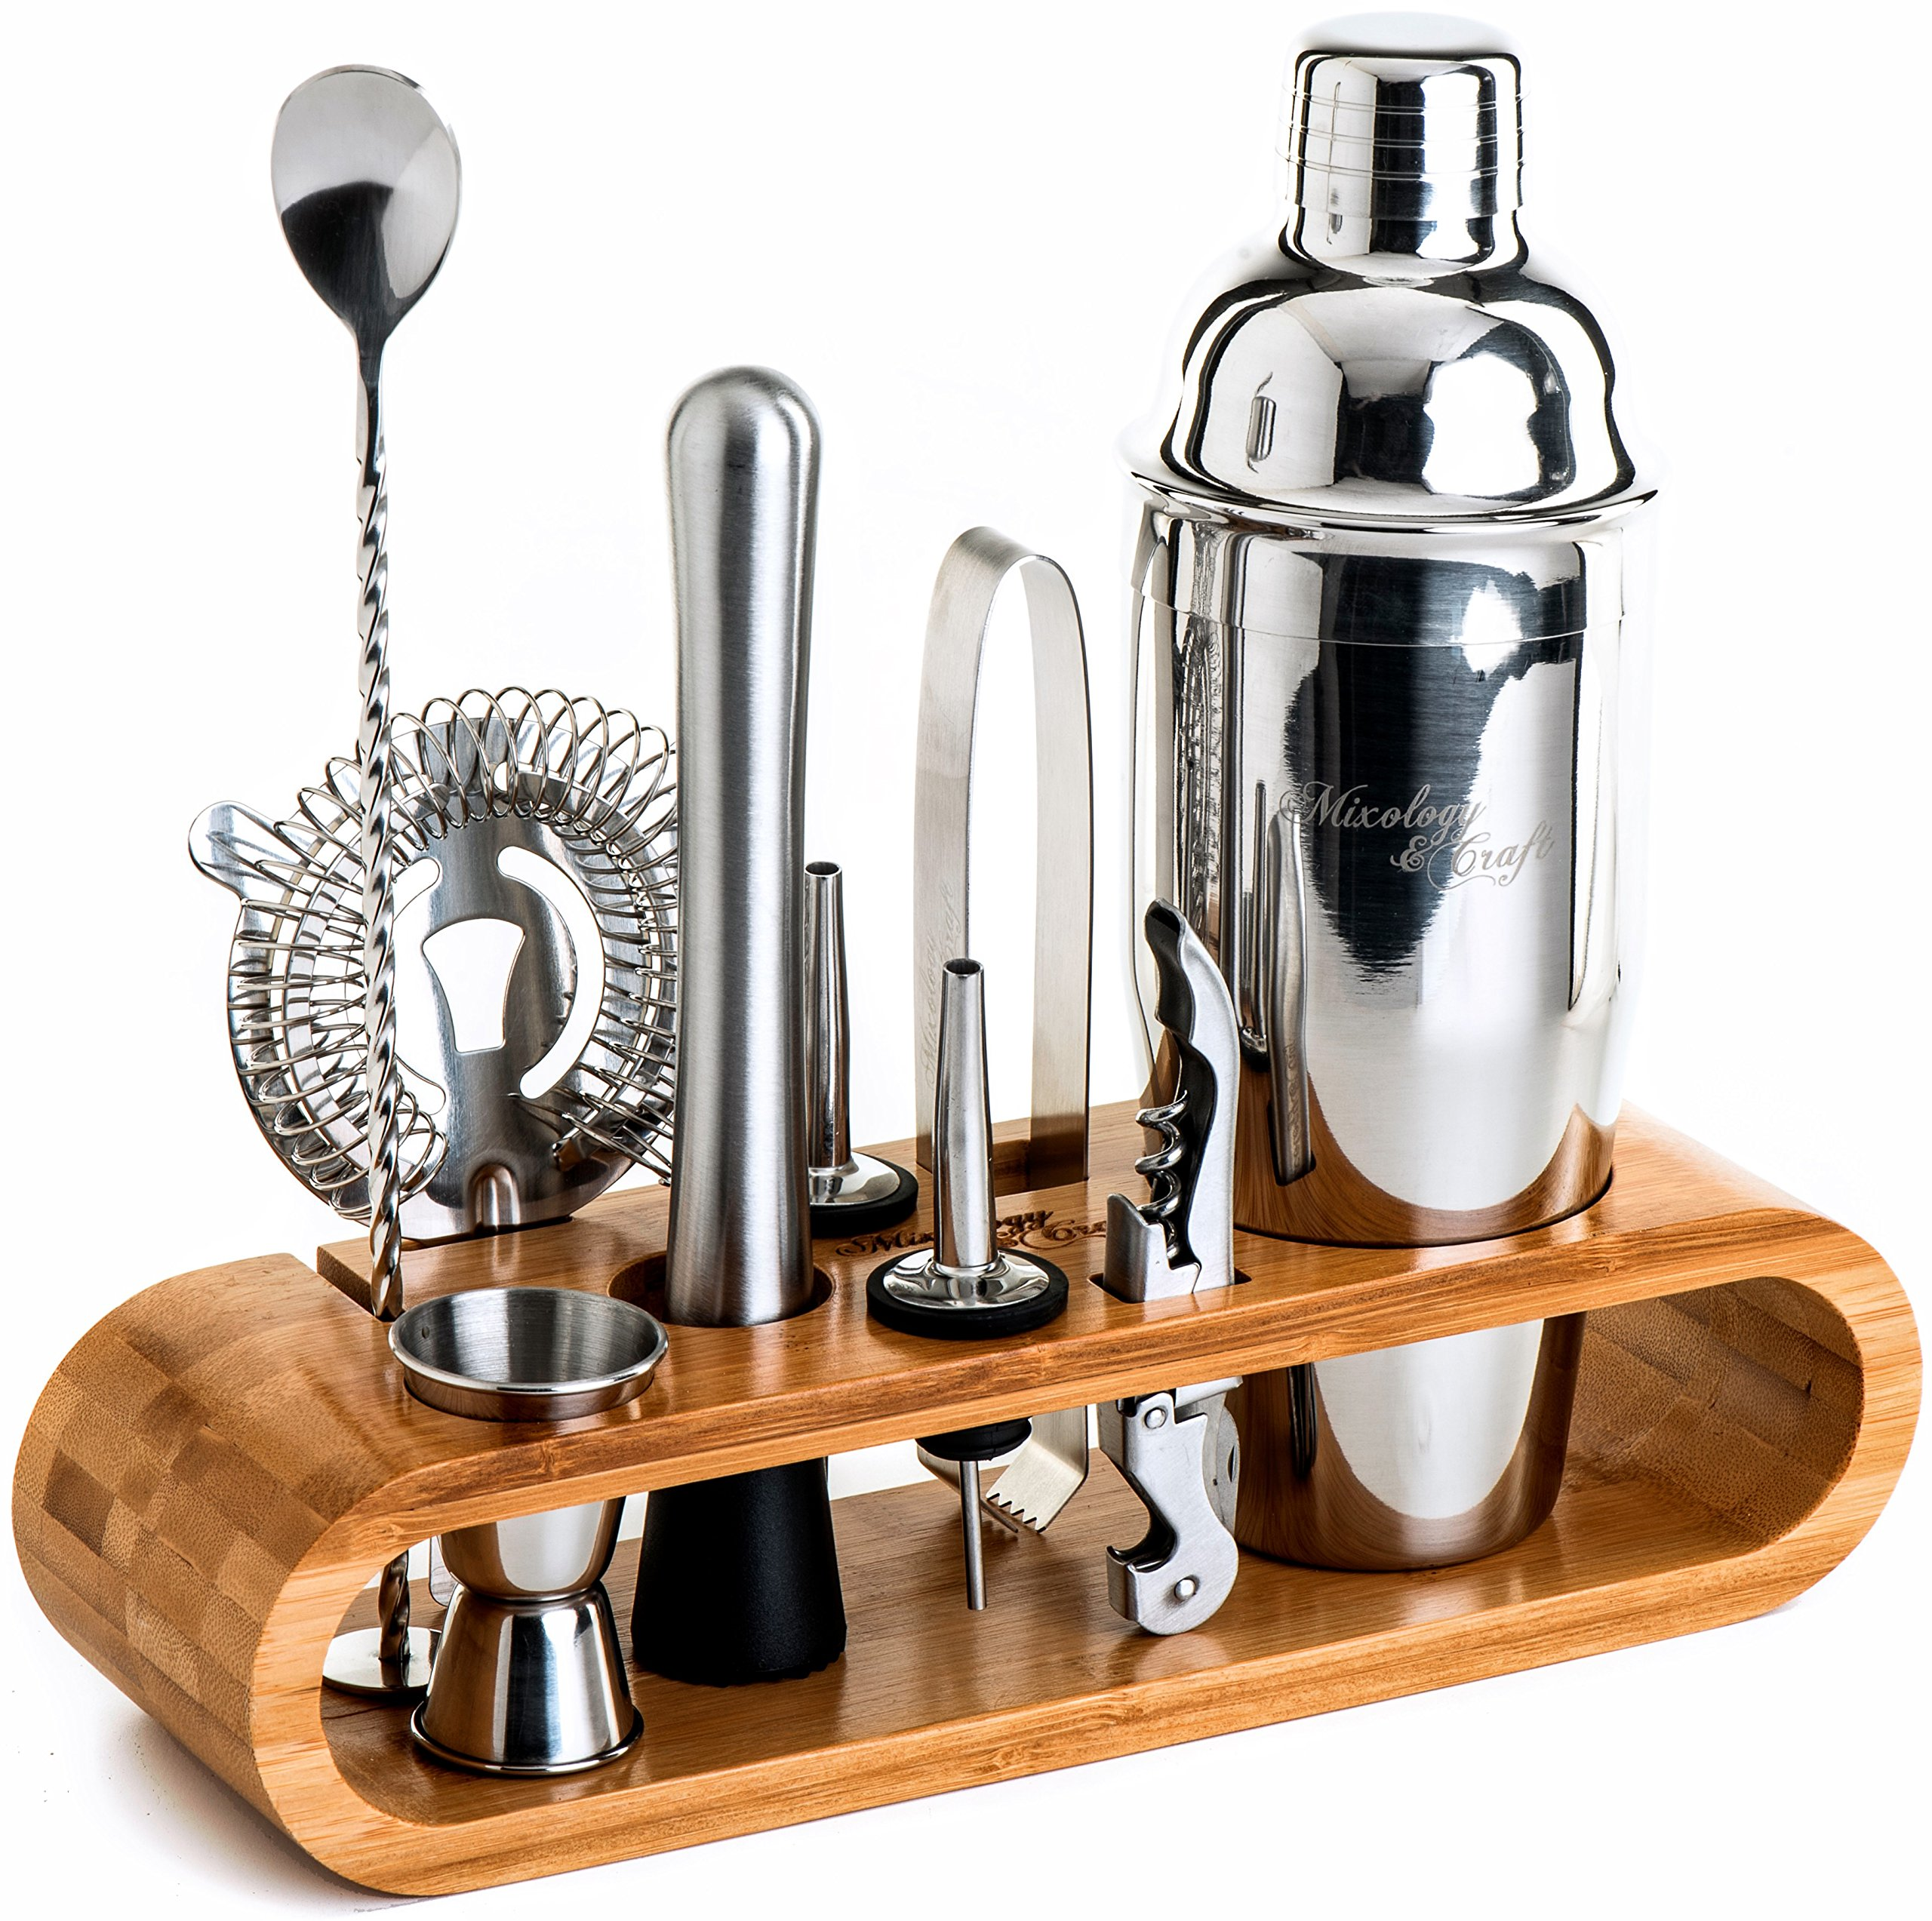 Mixology Bartender Kit: 10-Piece Bar Tool Set with Stylish Bamboo Stand - Perfect Home Bartending Kit and Martini Cocktail Shaker Set For an Awesome Drink Mixing Experience - Exclusive Recipes Bonus by Mixology & Craft